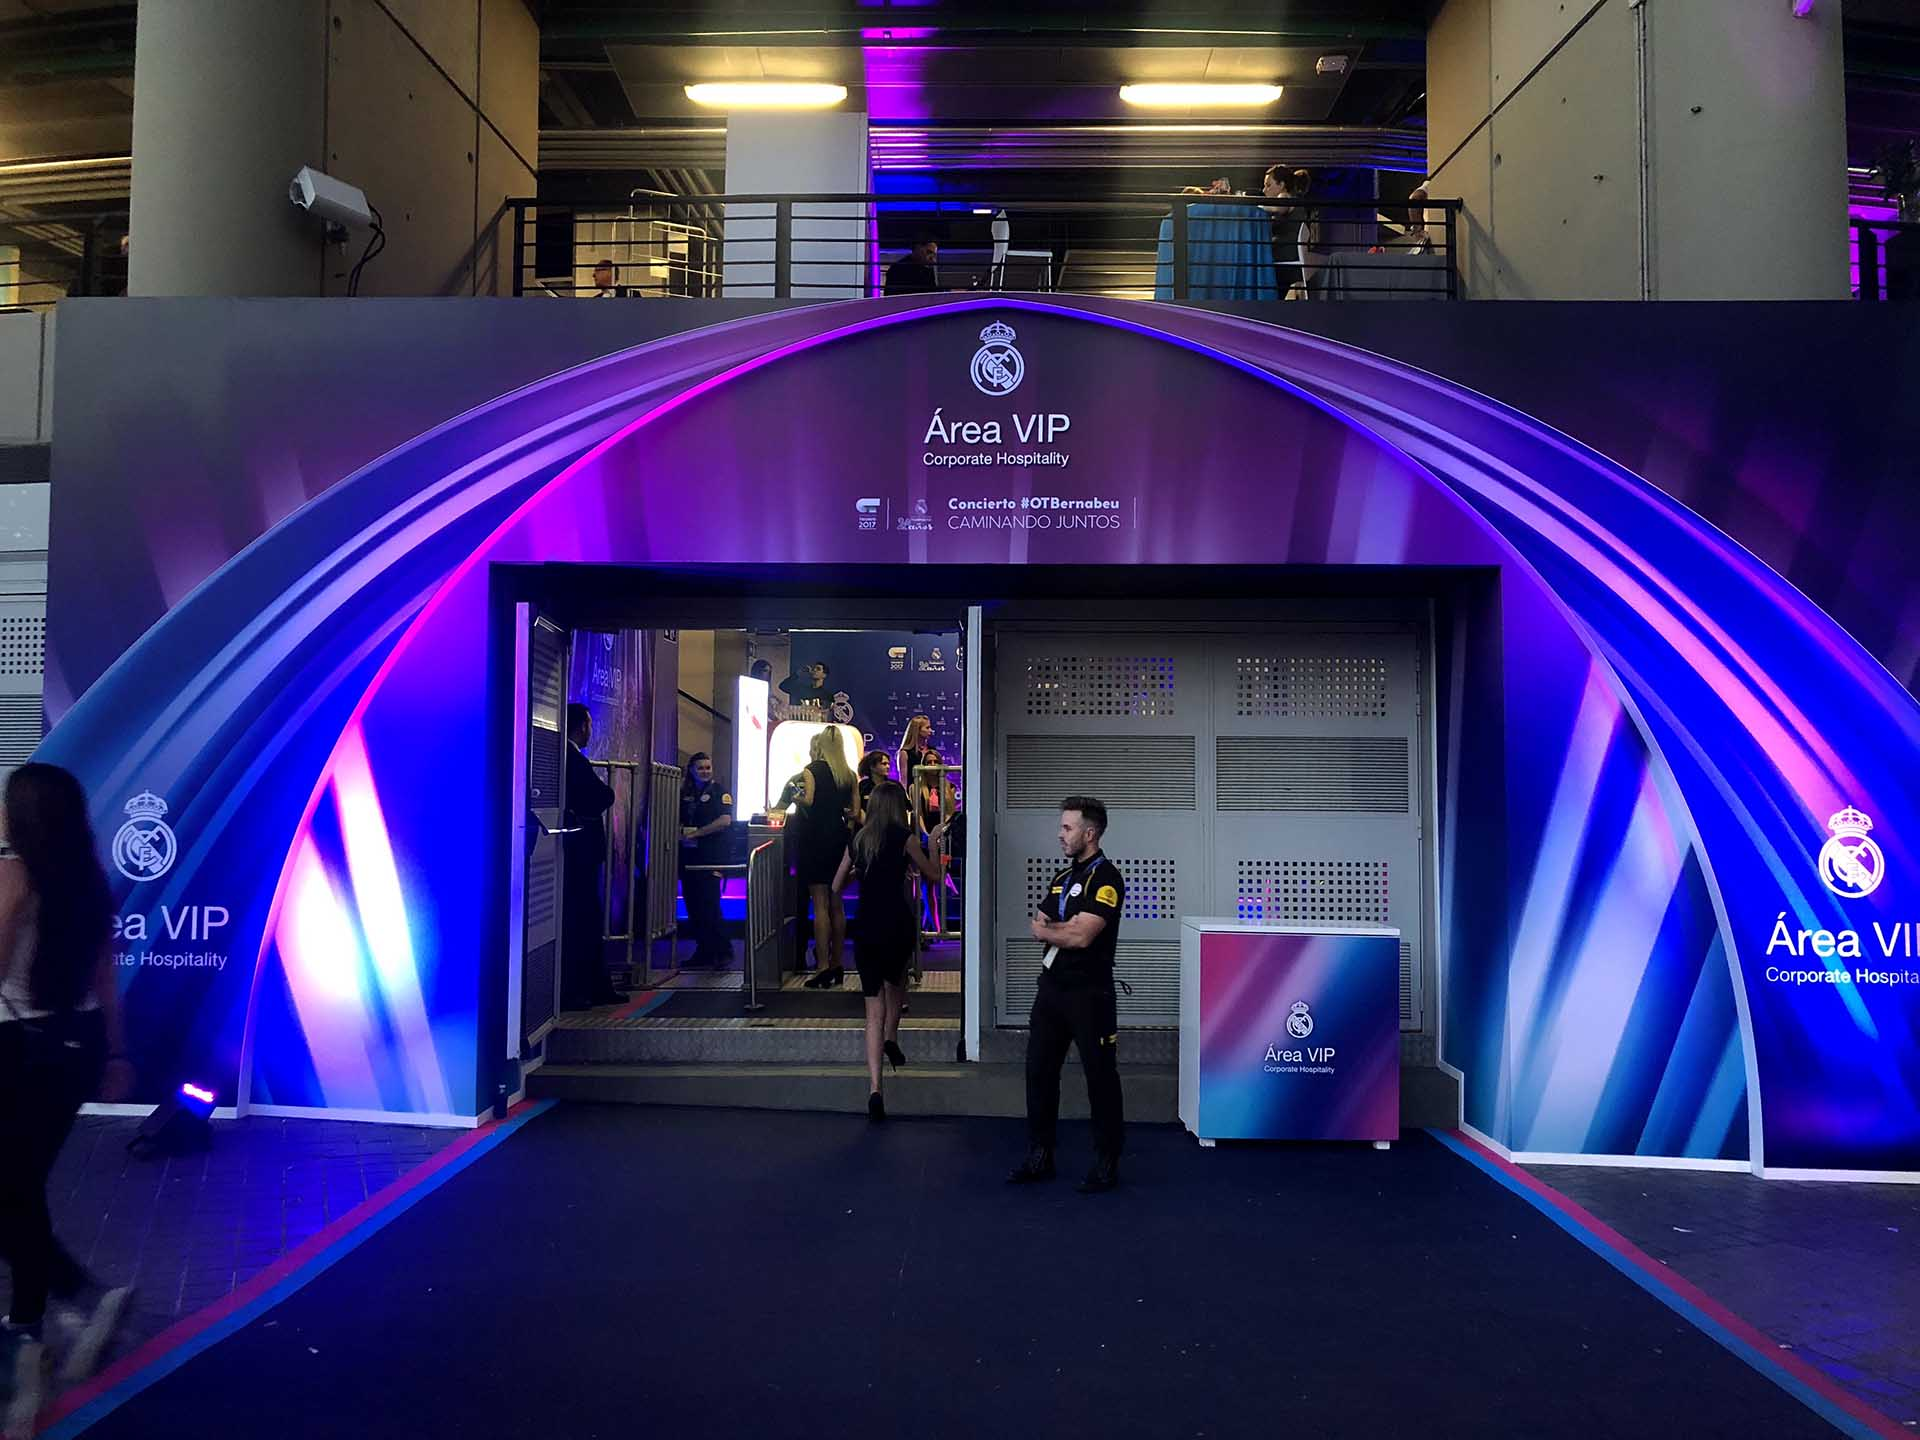 Annual event vip area Real Madrid. Access decoration